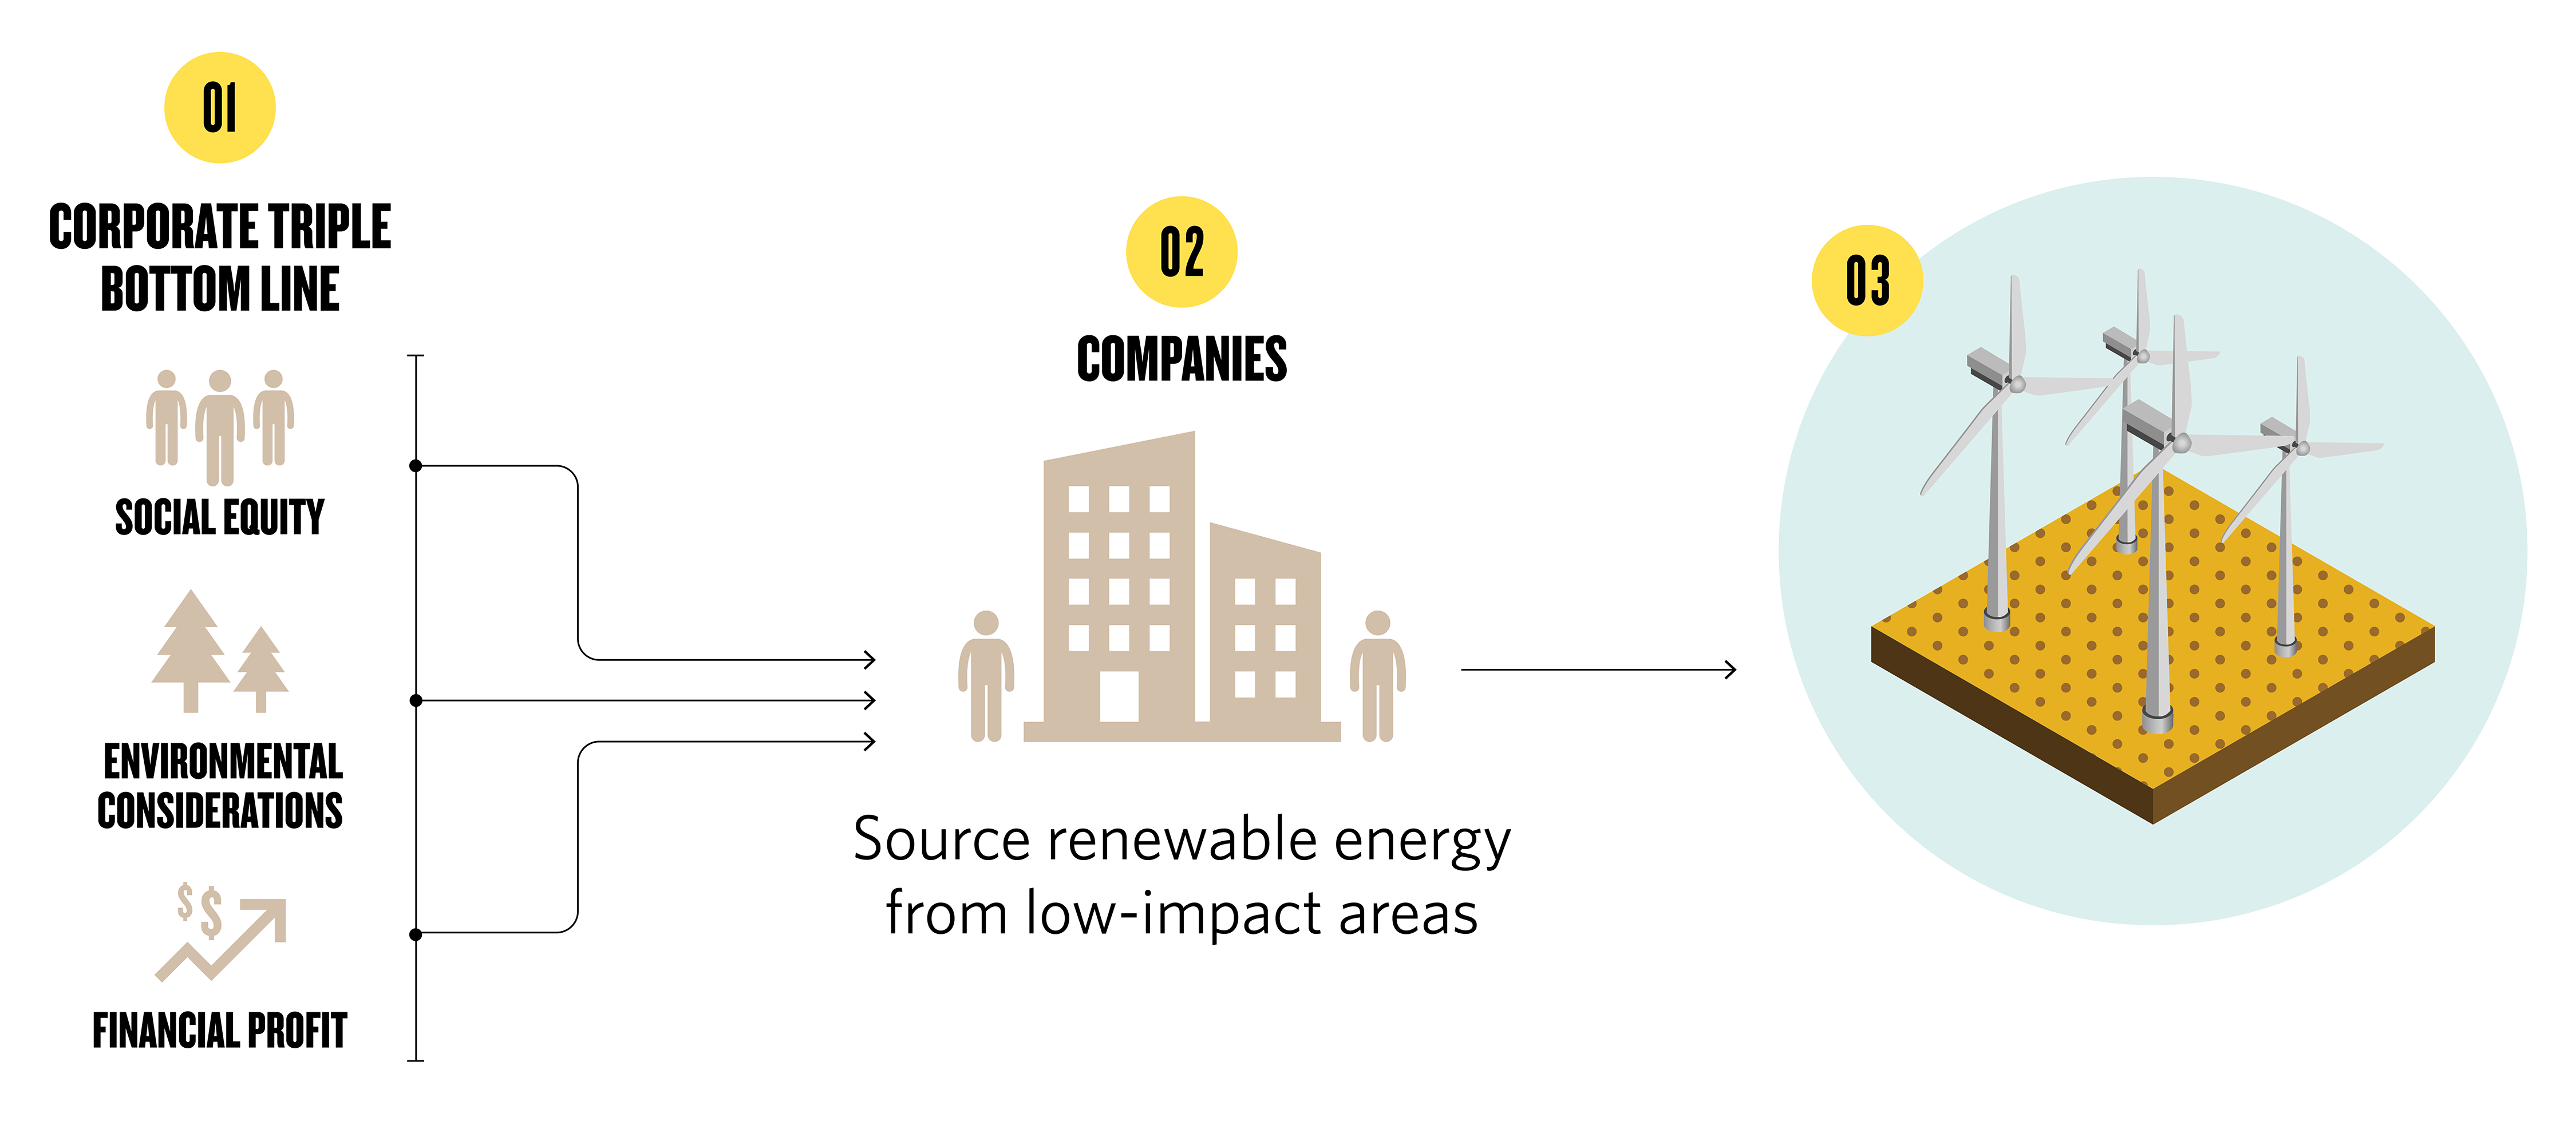 a flowchart that shows corporate triple bottom line (social equity, environmental considerations, and financial profit) contributing to companies sourcing renewable energy from low-impact areas